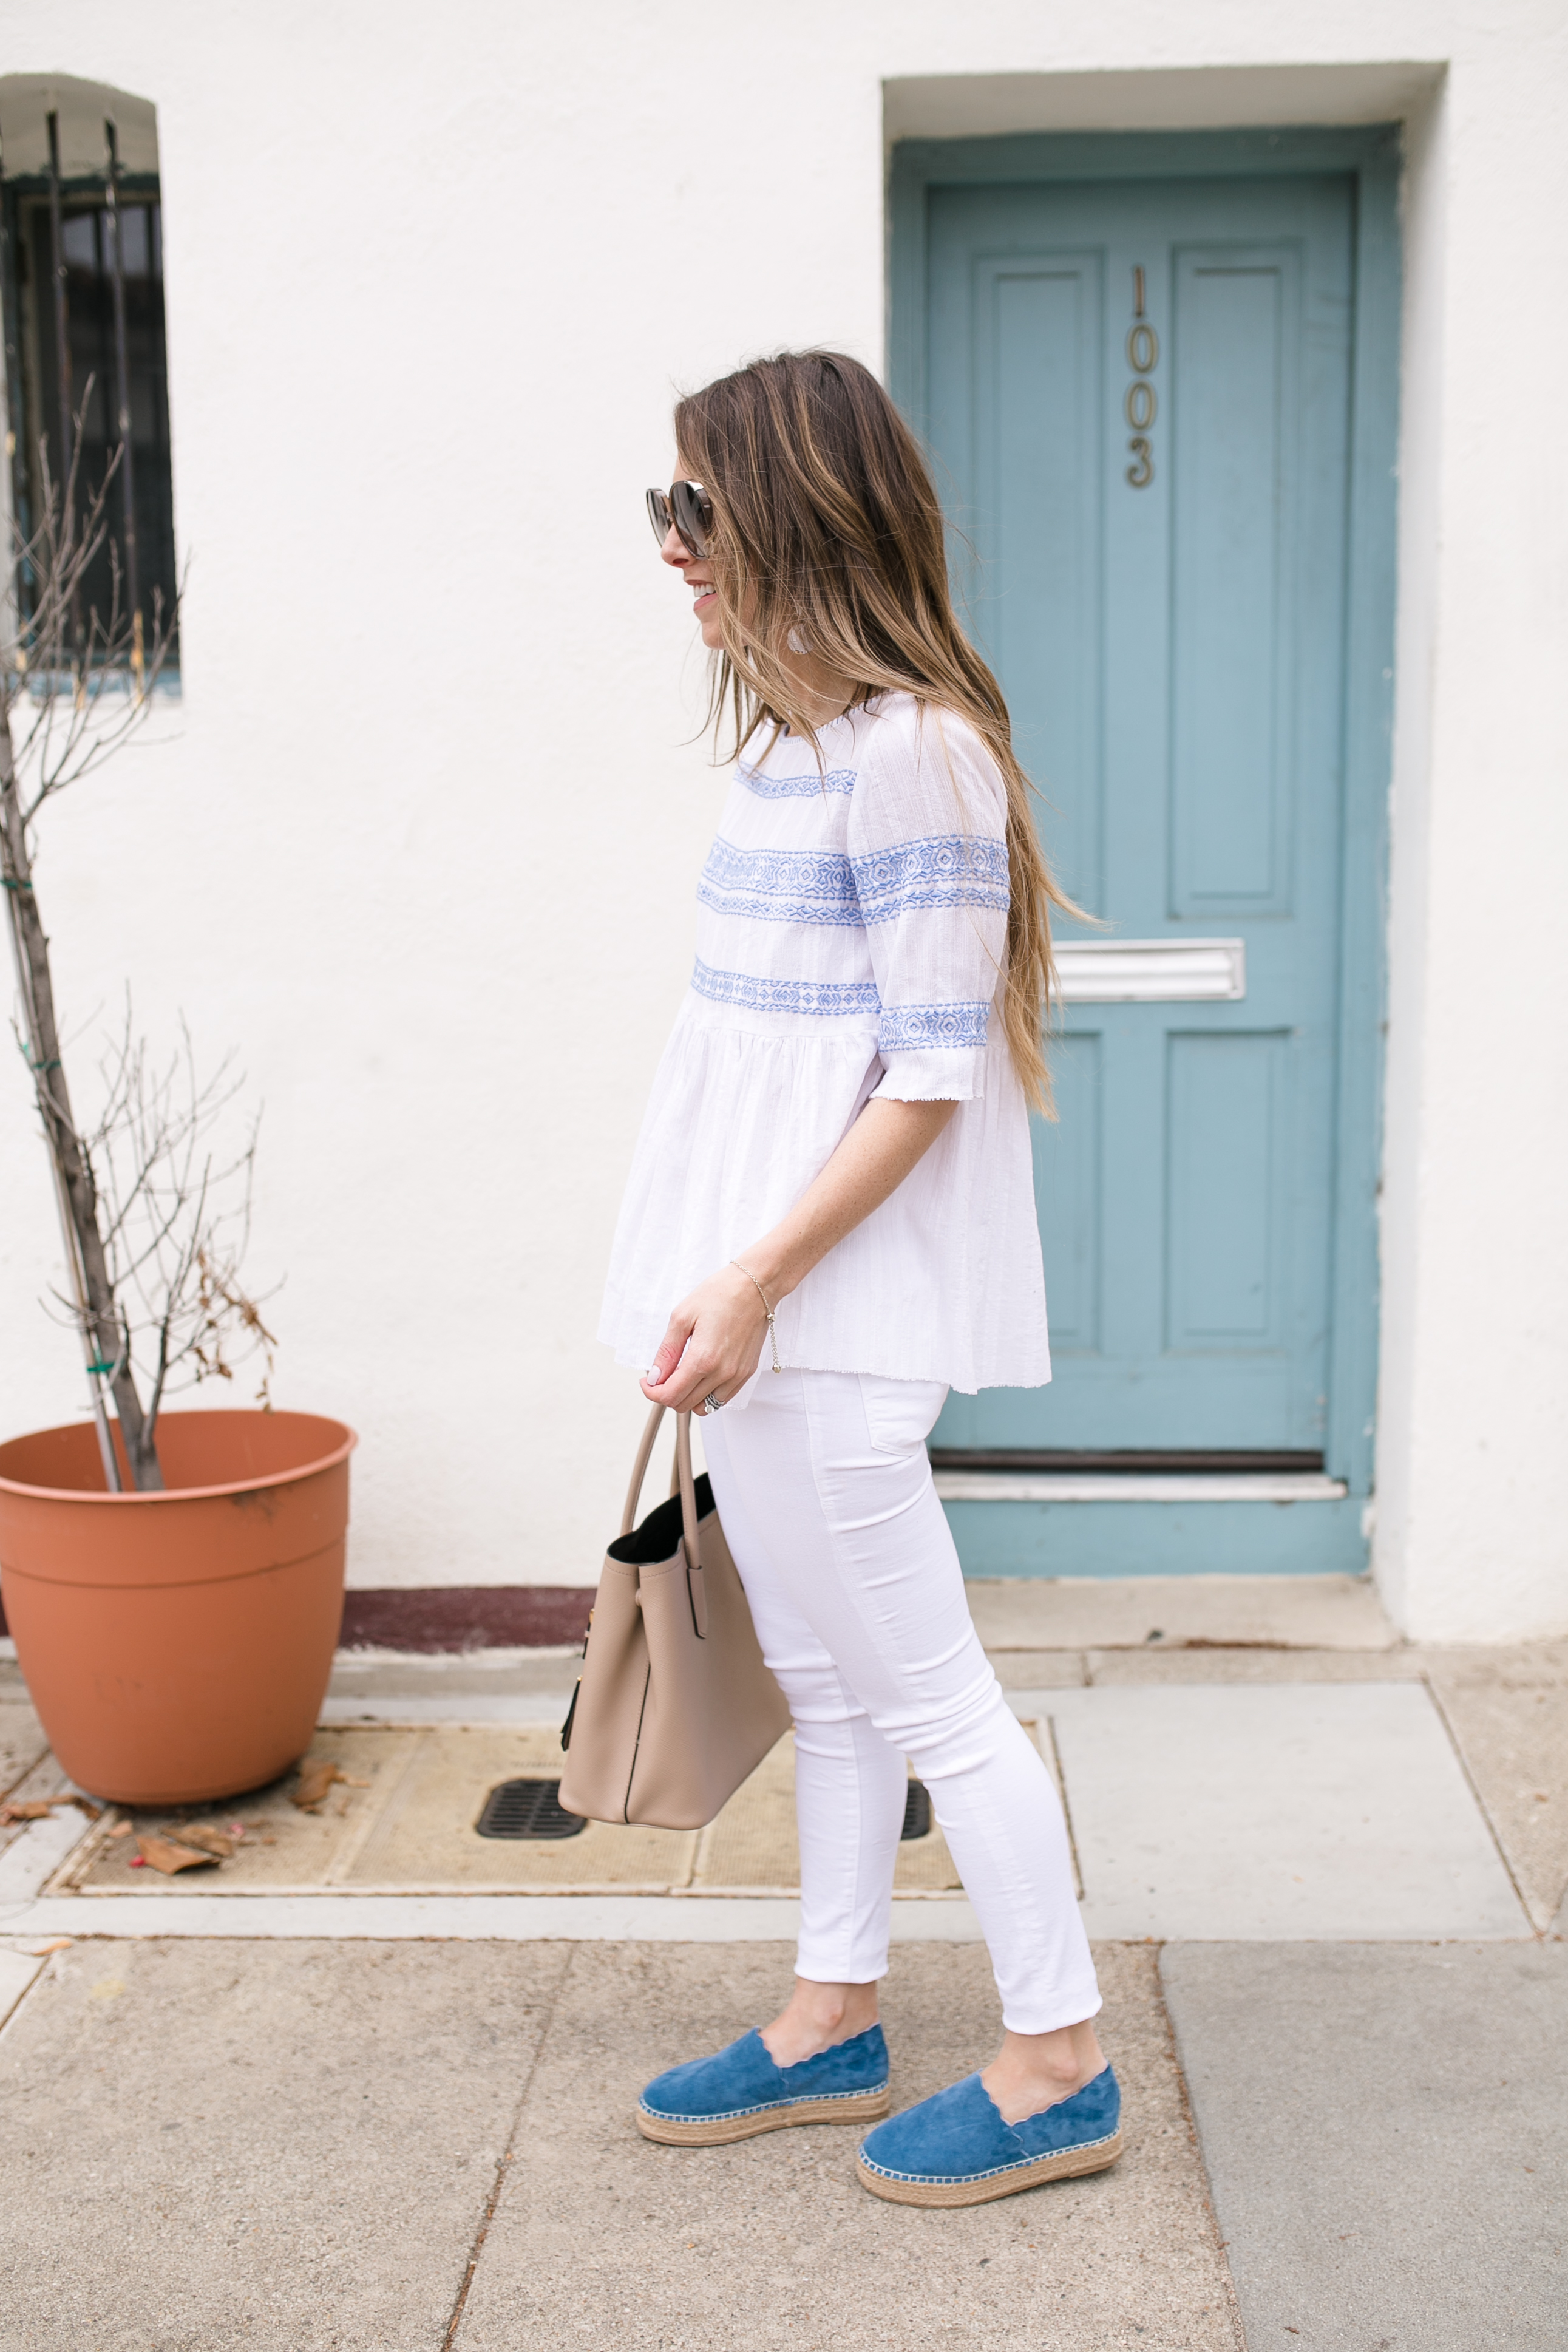 Style blogger Daryl-Ann Denner wearing Chloe Espadrilles dupes and an embroidered blue and white top with white jeans